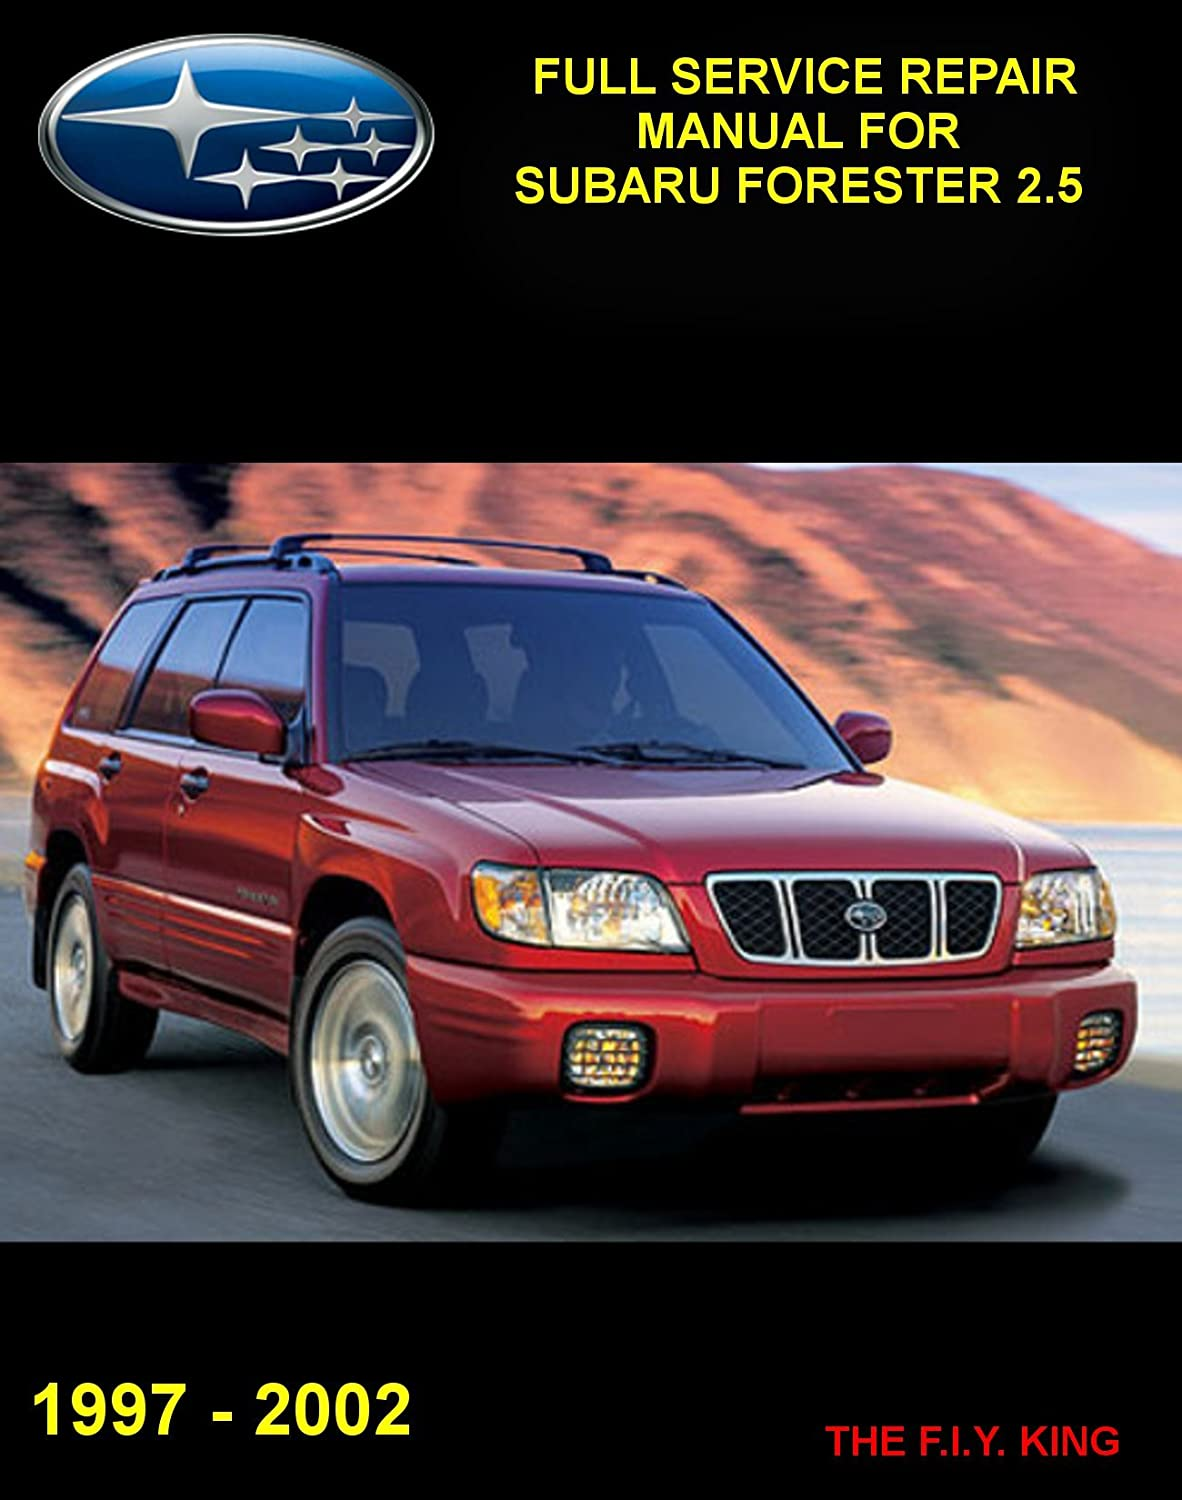 Amazon.com: 97-02 Subaru Forester Full Service Repair Manual on Cd-rom:  Everything Else